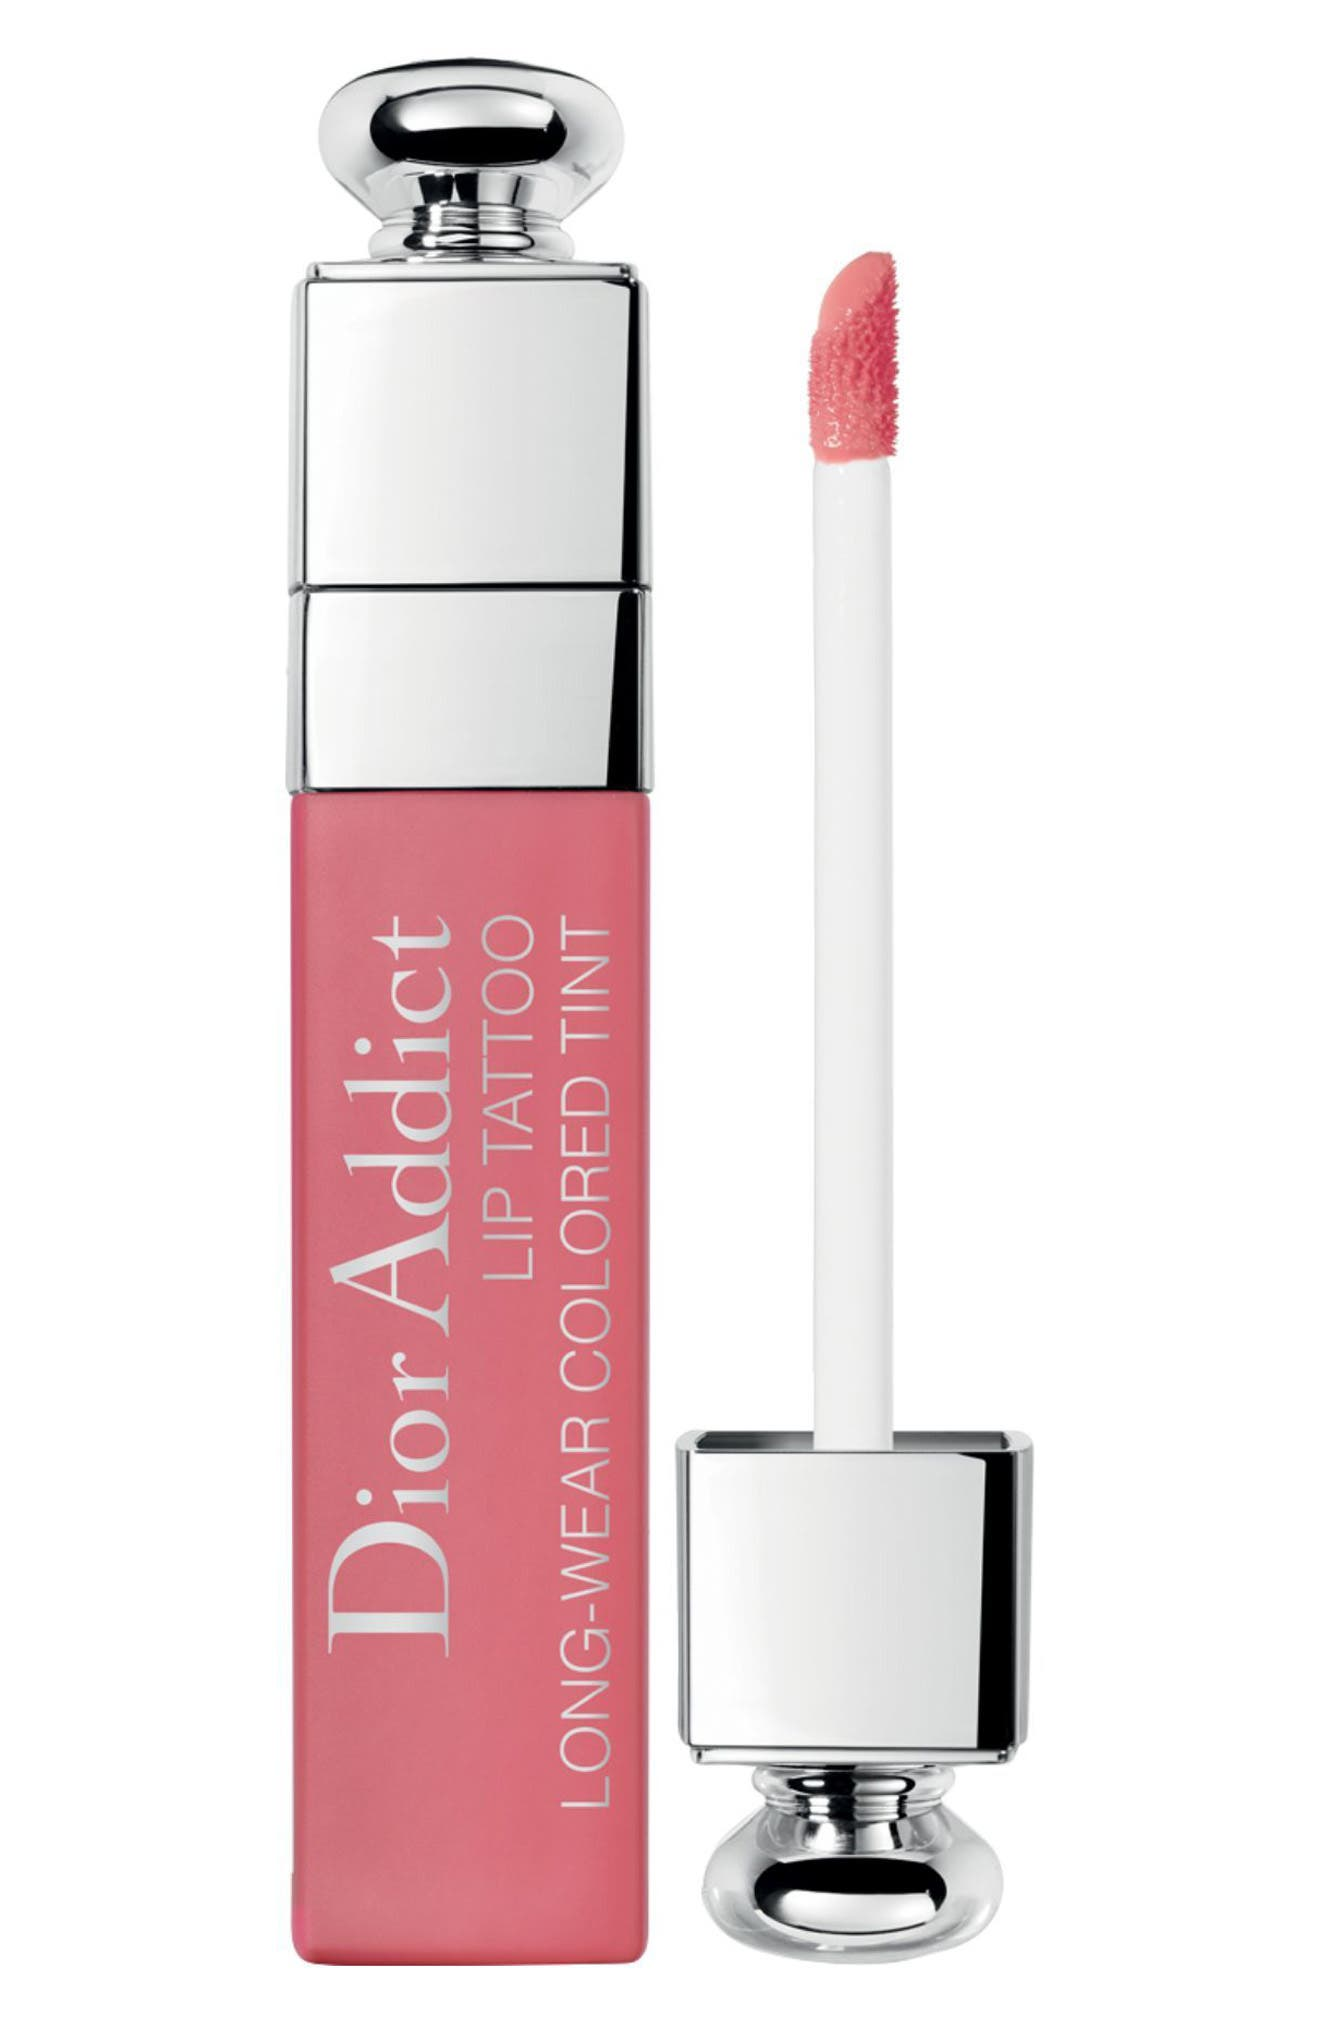 Dior Addict Lip Tattoo Long-Wearing Color Tint - 351 Natural Nude